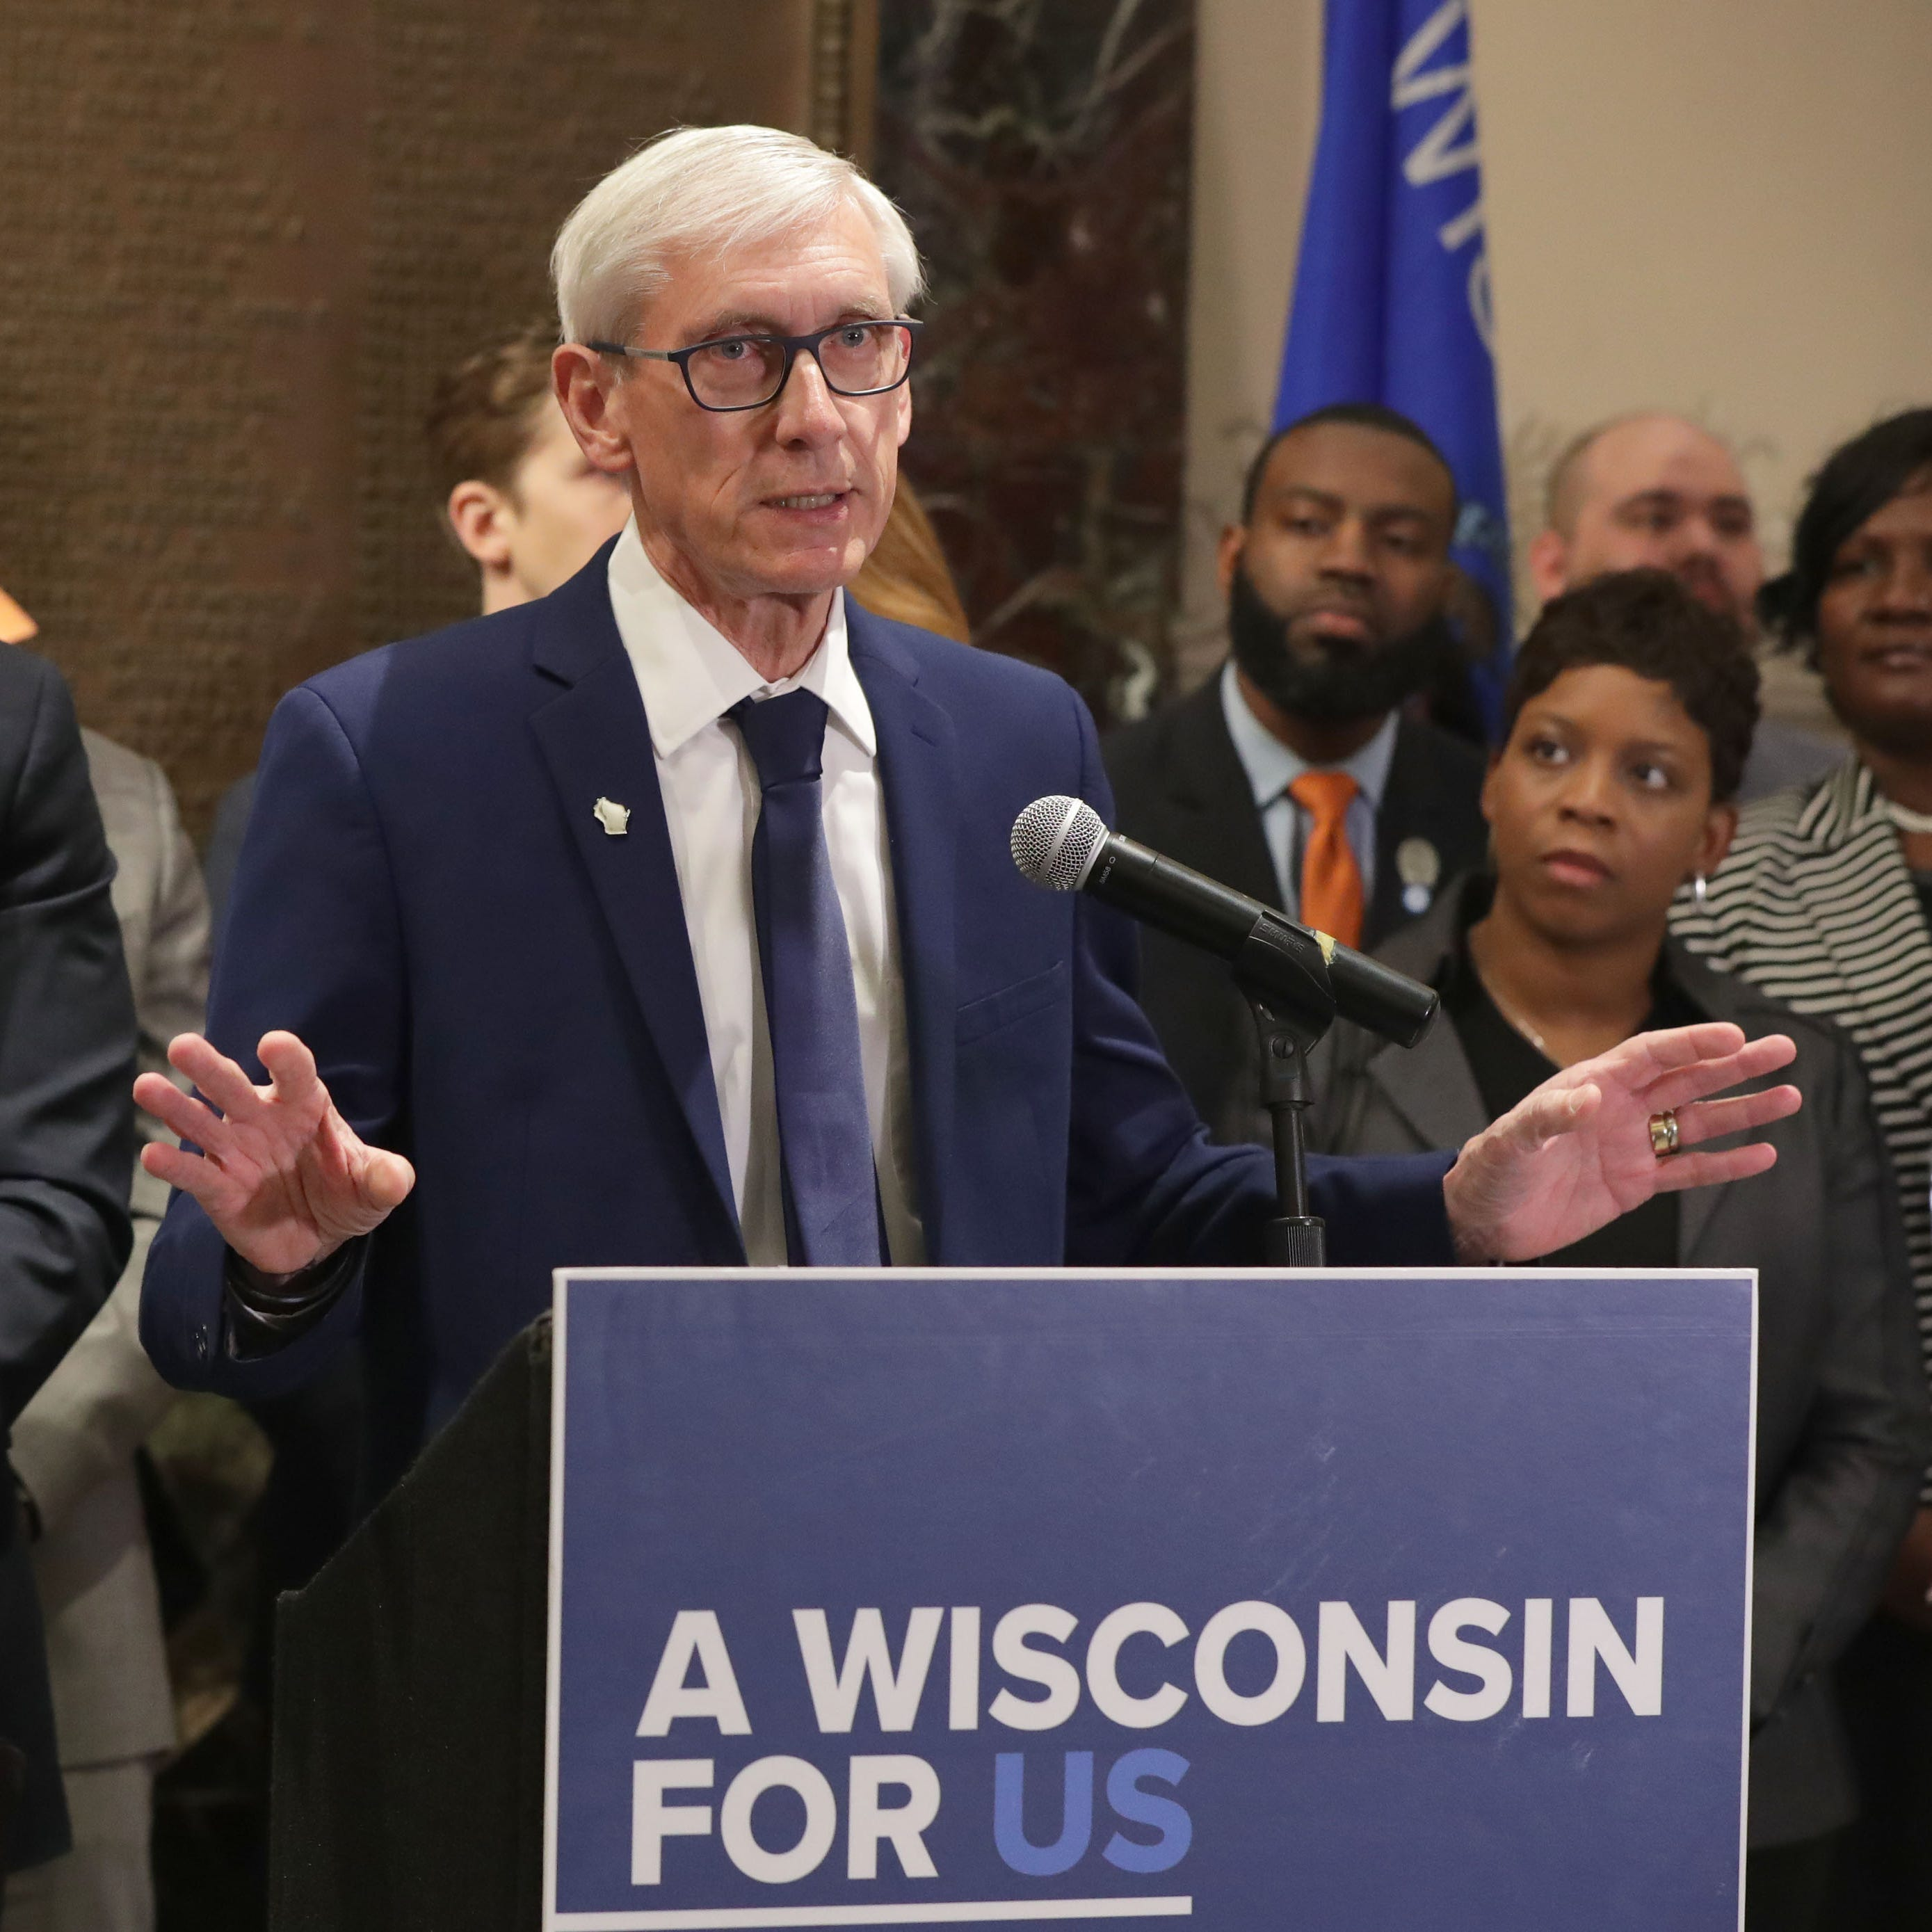 Gov. Tony Evers won't say whether he agrees with aide's claim that Republicans are sexist